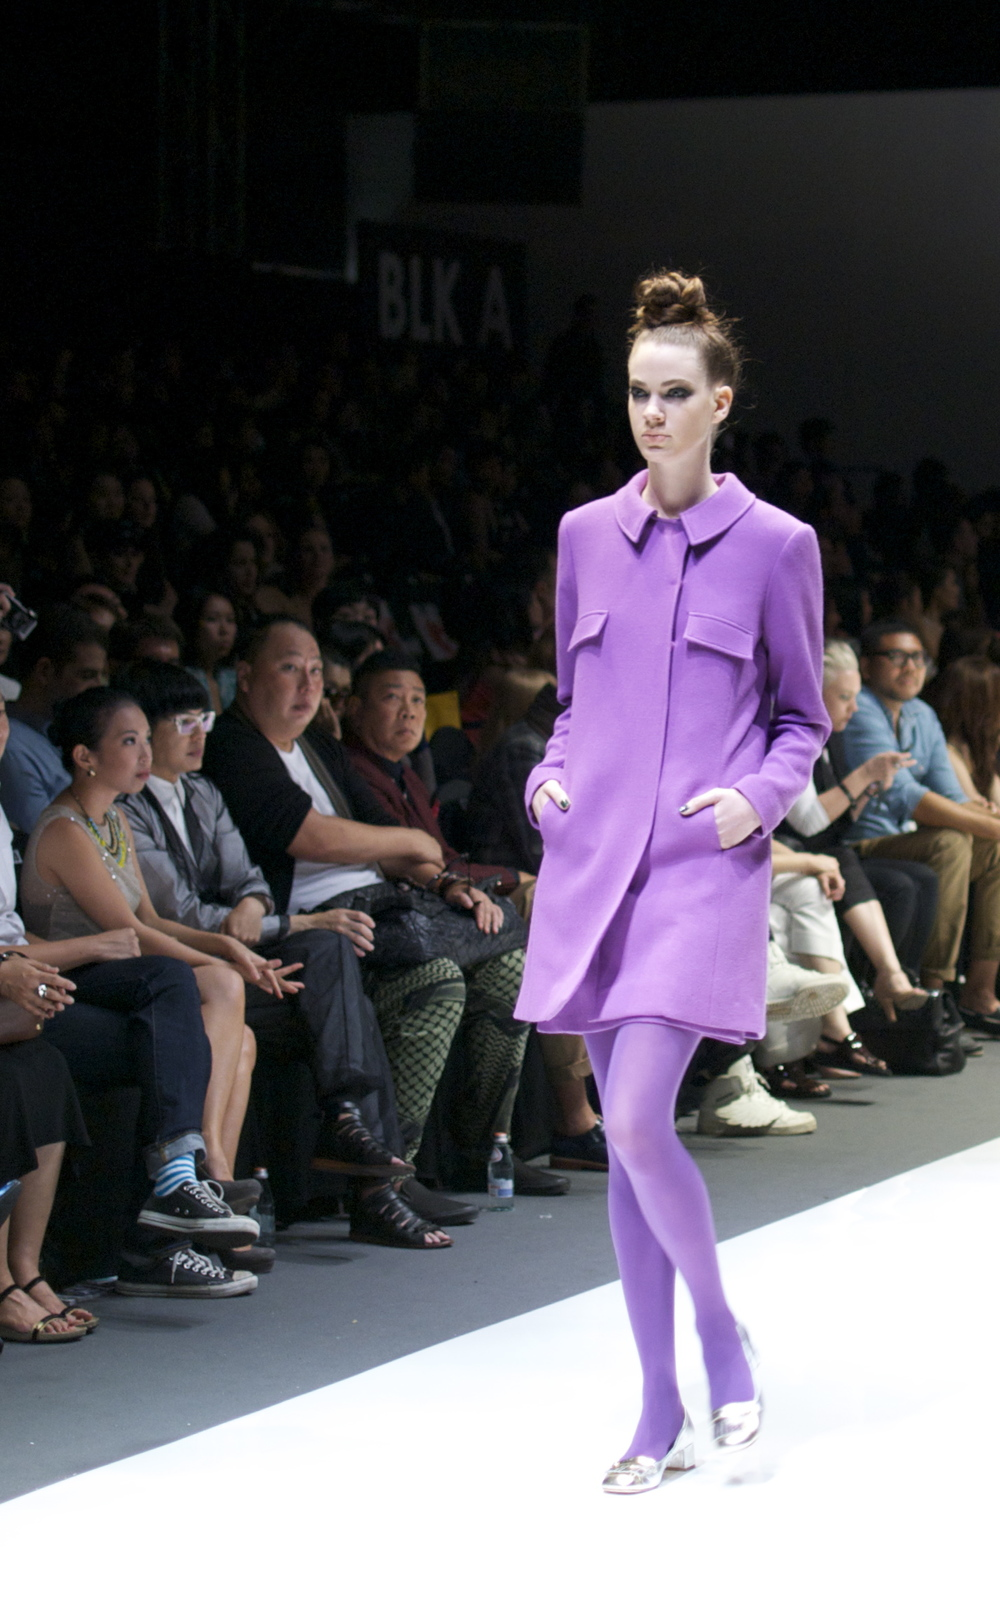 2012 Audi Fashion Festival: Raoul Fall-Winter Women's Collection